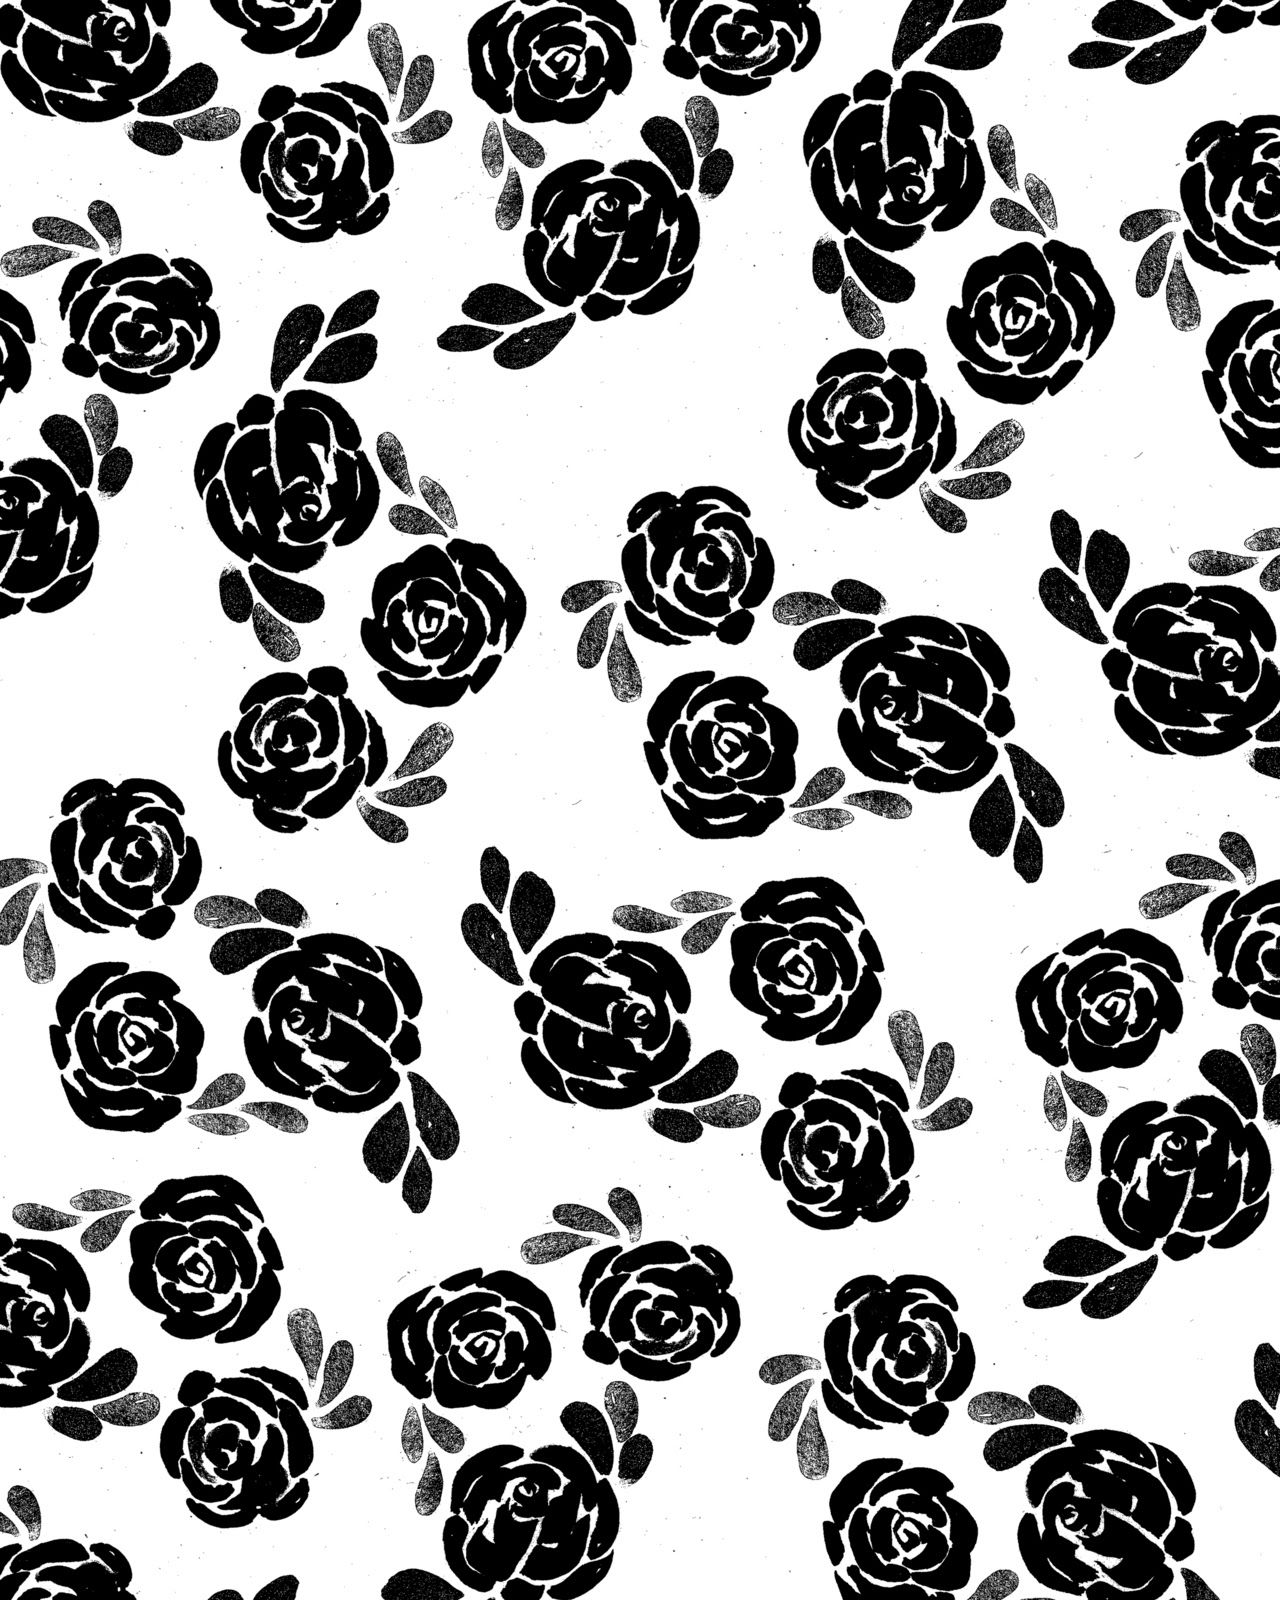 papier fabrik black and white roses Black and white